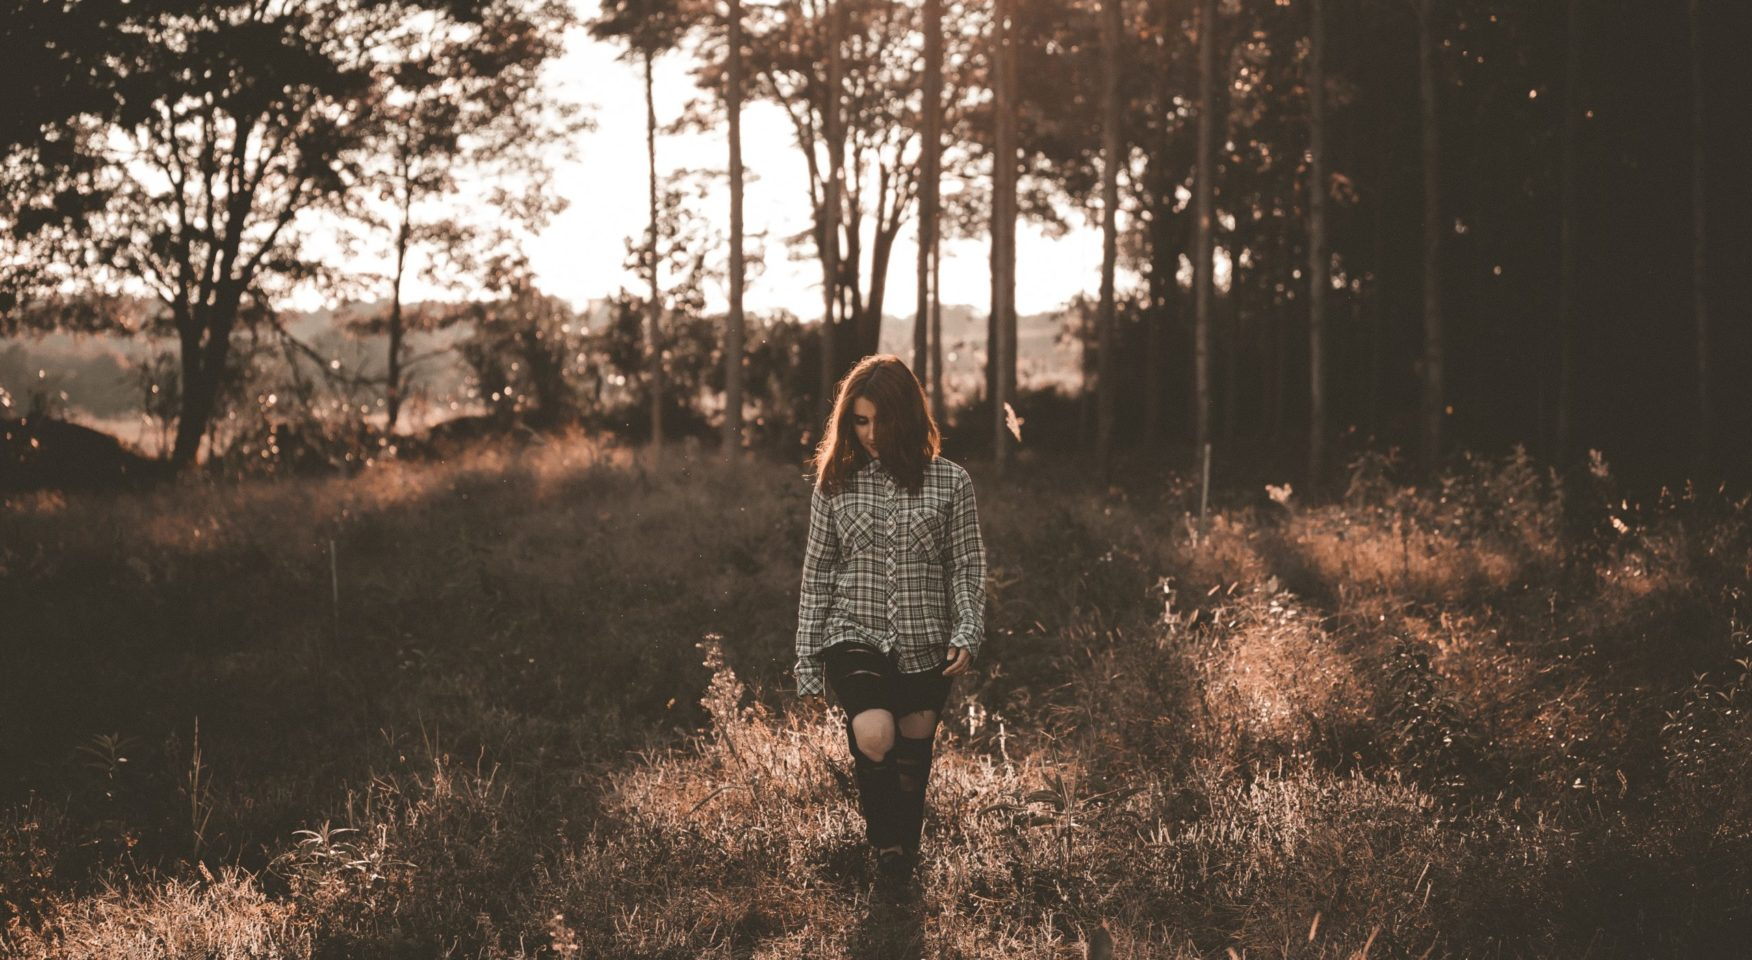 Sepia-tinted photo of woman in plaid shirt walking in forest